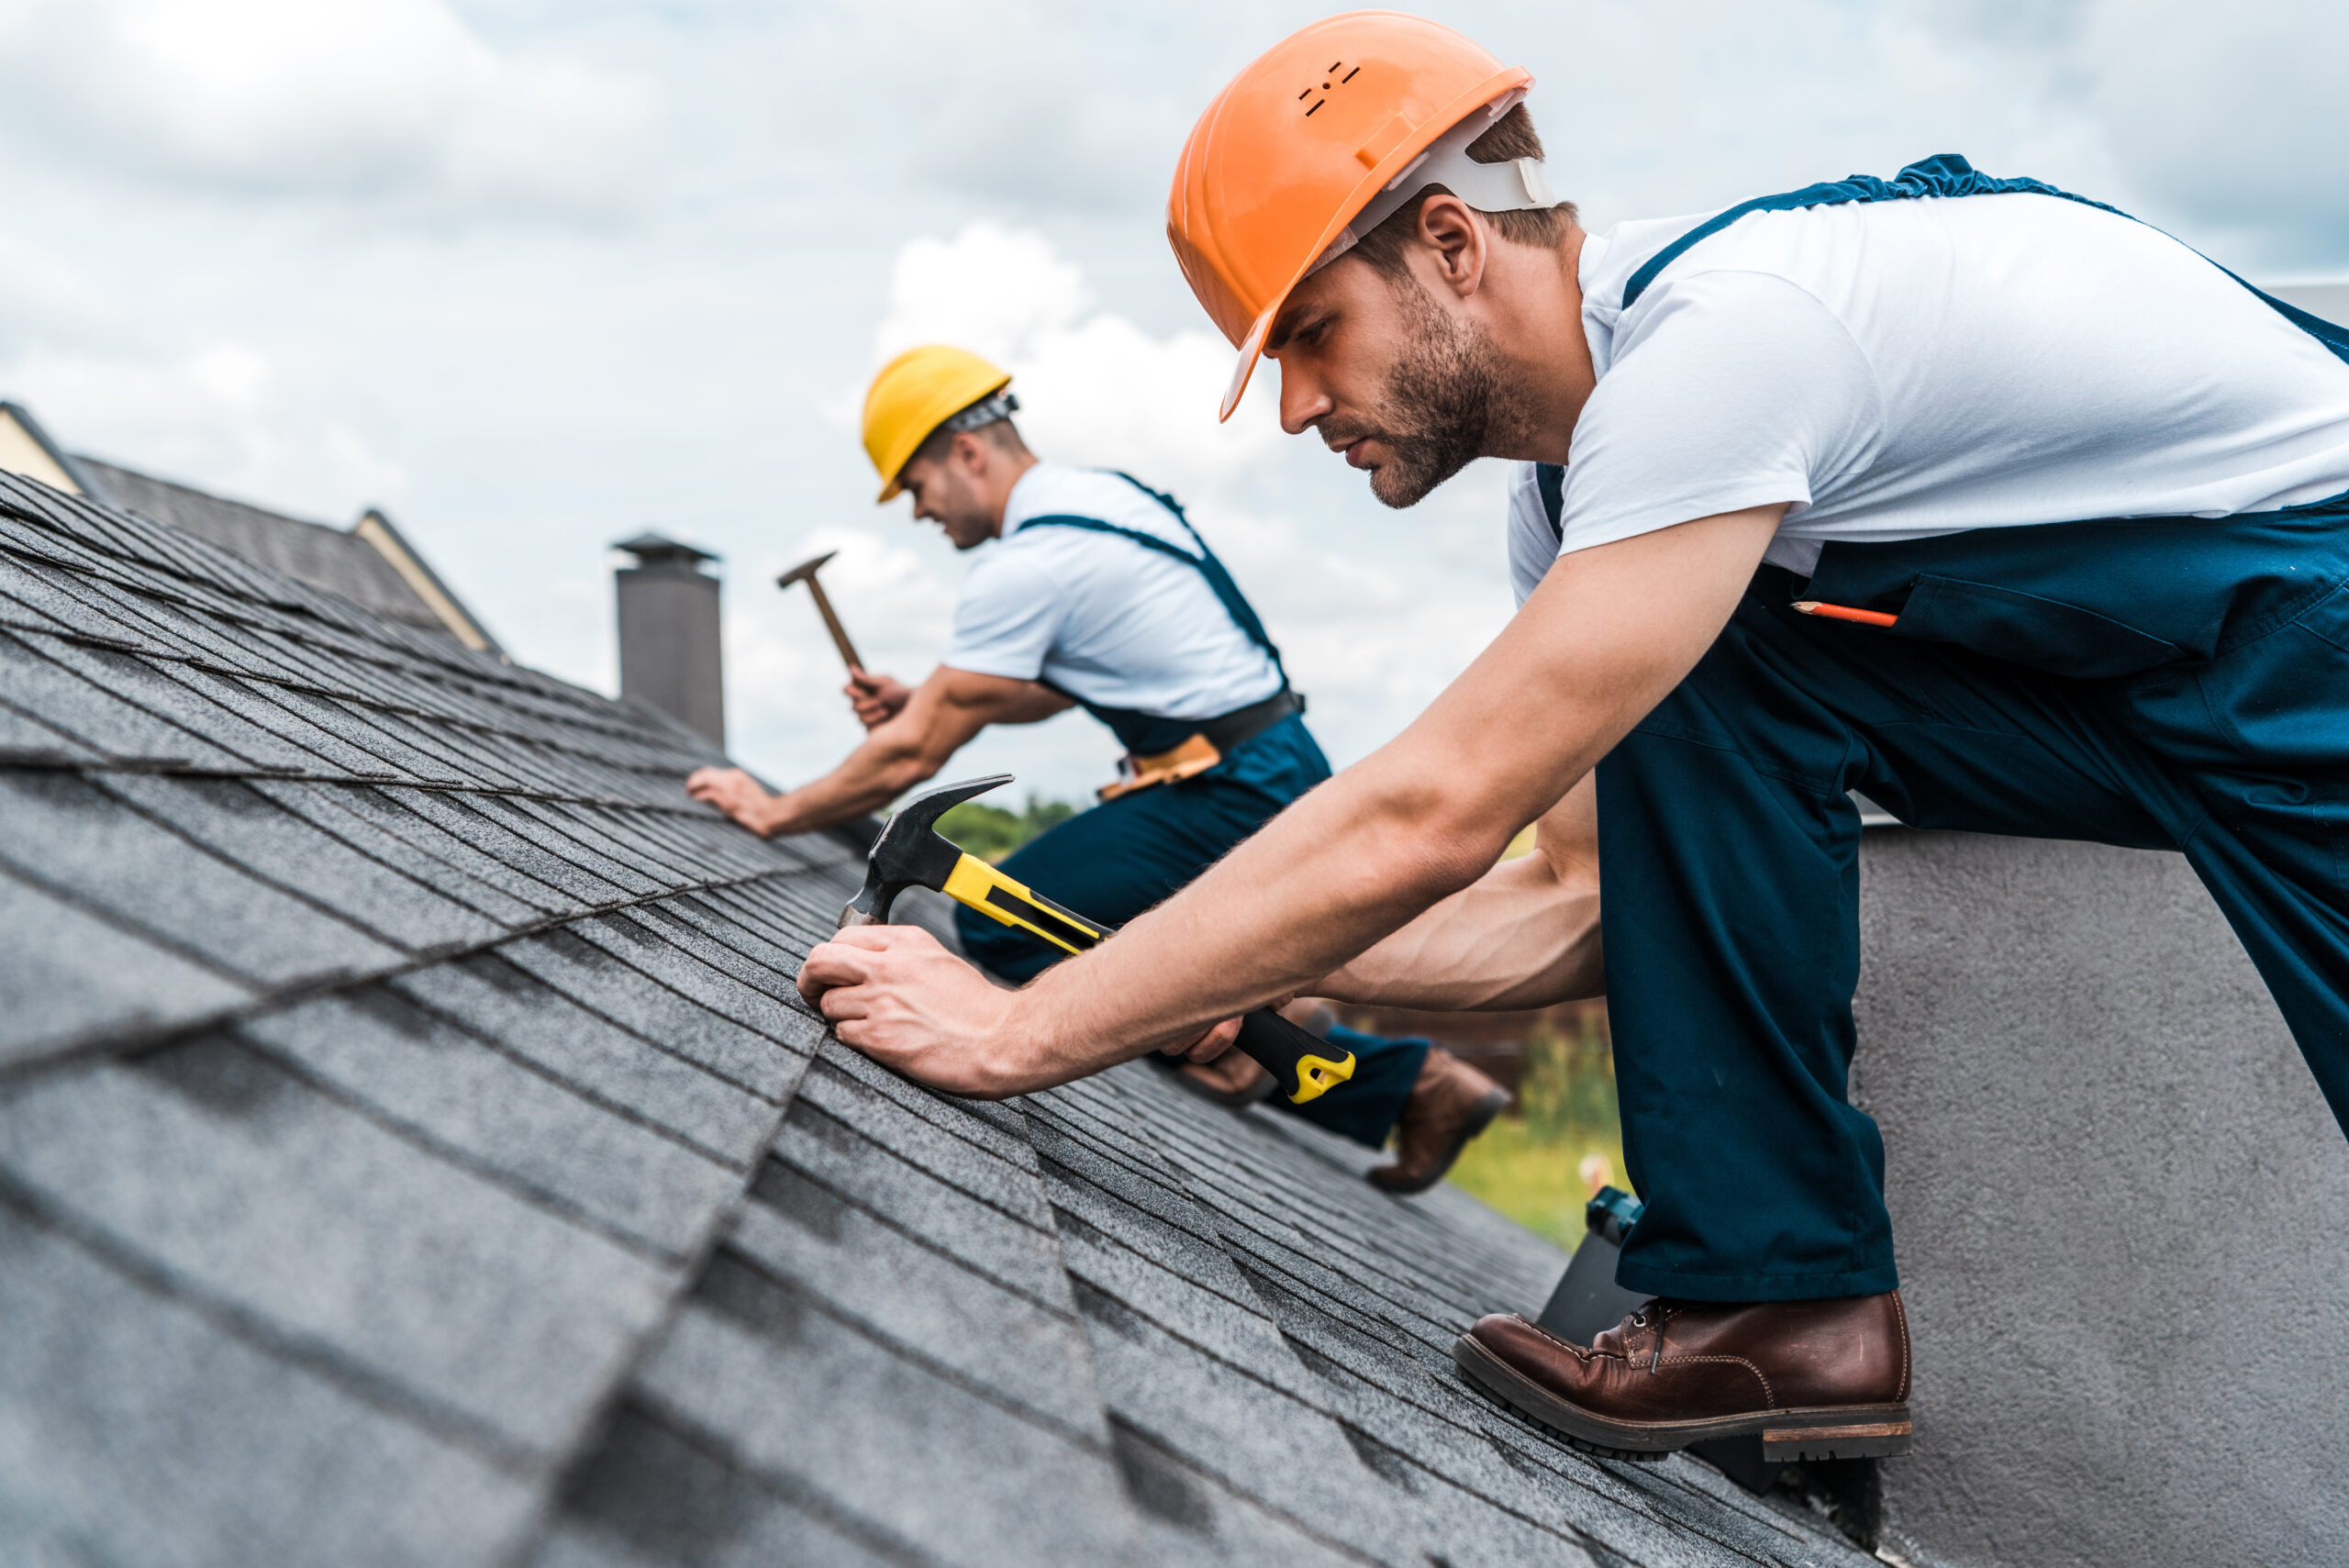 Roofer repairing roof in Vancouver